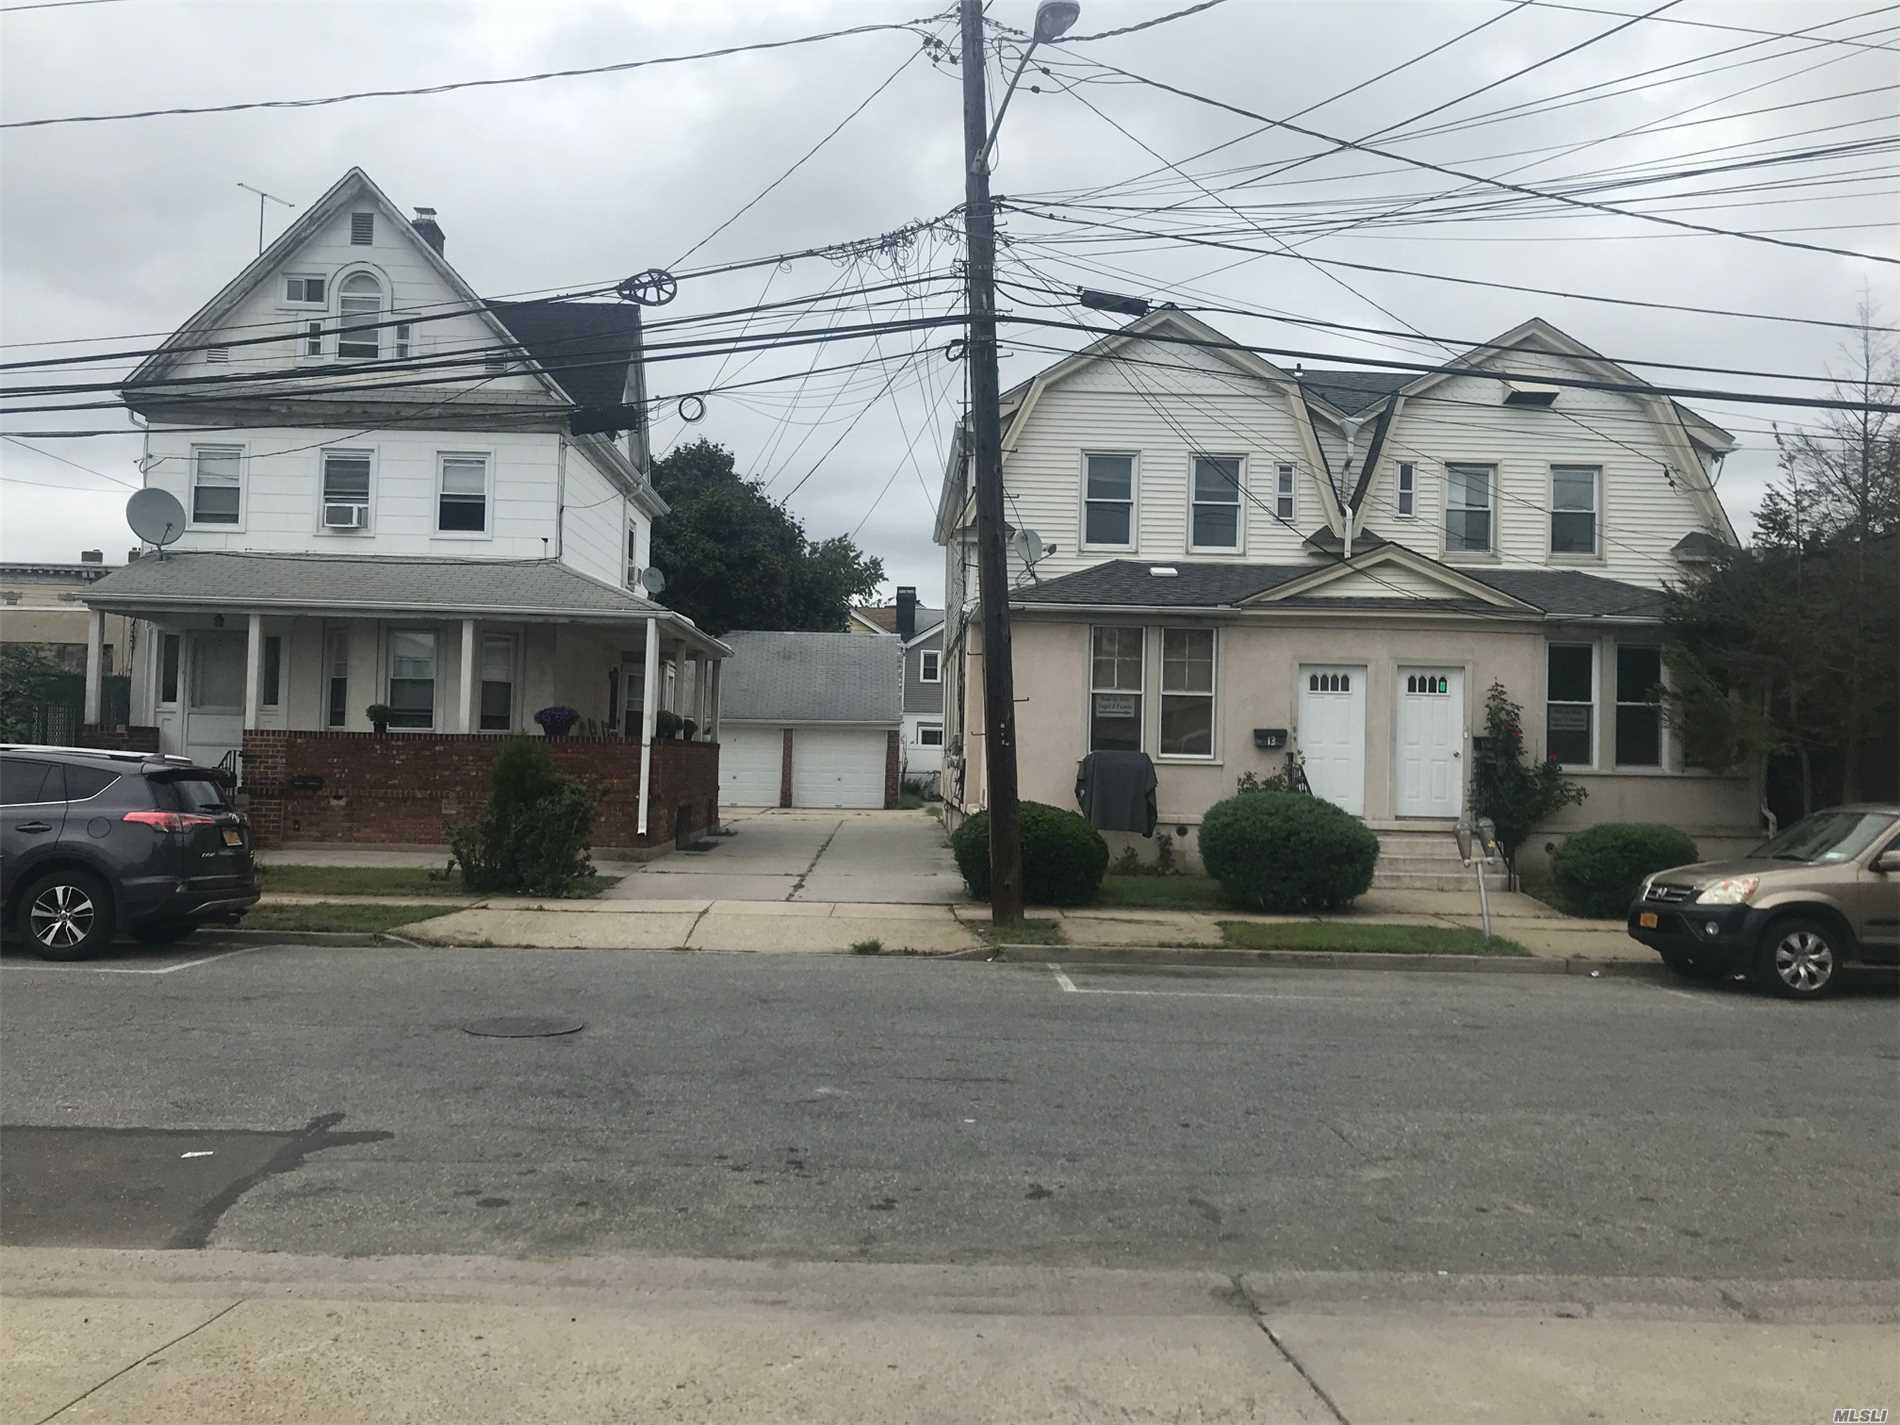 Two - Two Family Homes Package. 11Vb Is At 2Br/ 1Ba Over 1Br/2Ba With Huge Fin Base W/Ose. 13/15 Vb Is A Side By Side (2 Duplexes) Each Have 4Br/3.5Ba. Property Also Has 2Car Garage And Large Driveway. Close To Lirr, Buses, Schools And Shopping. Some Units Occupied